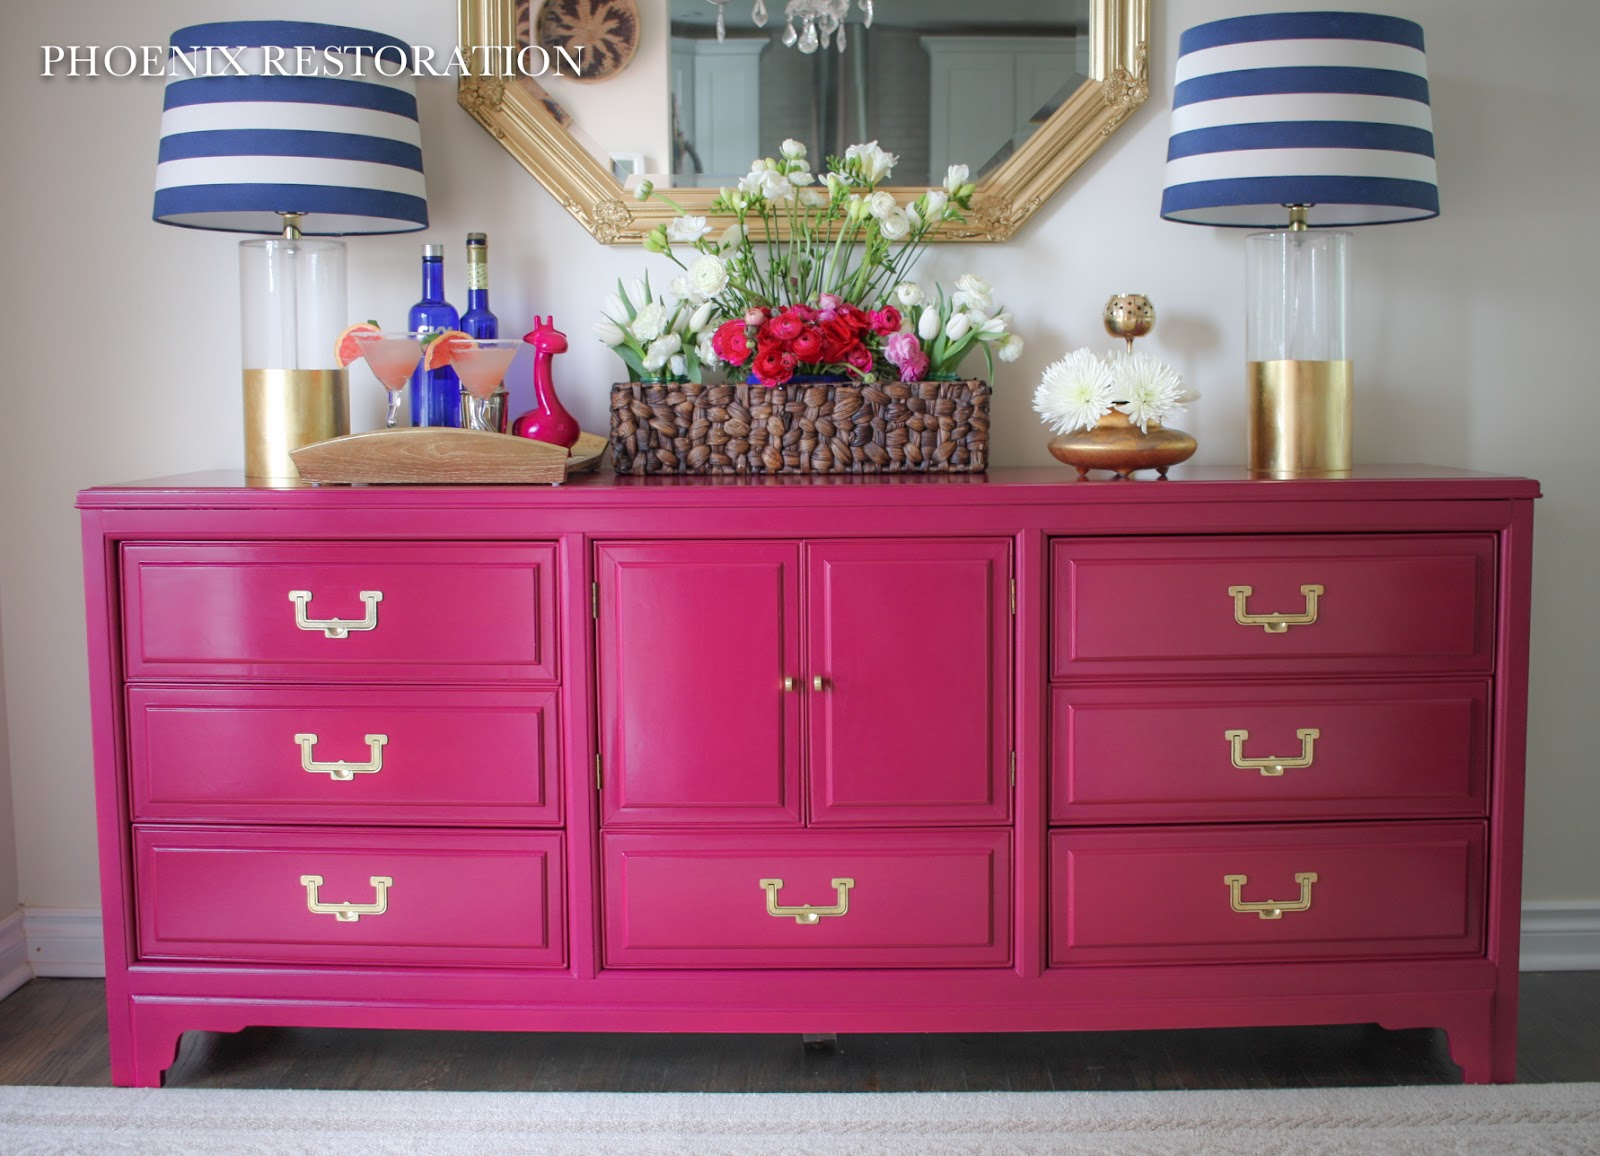 Someone Has Created A Great Look With This Hot Pink Chair And Grouping Of  Tropical And Chinoiserie Pillows.